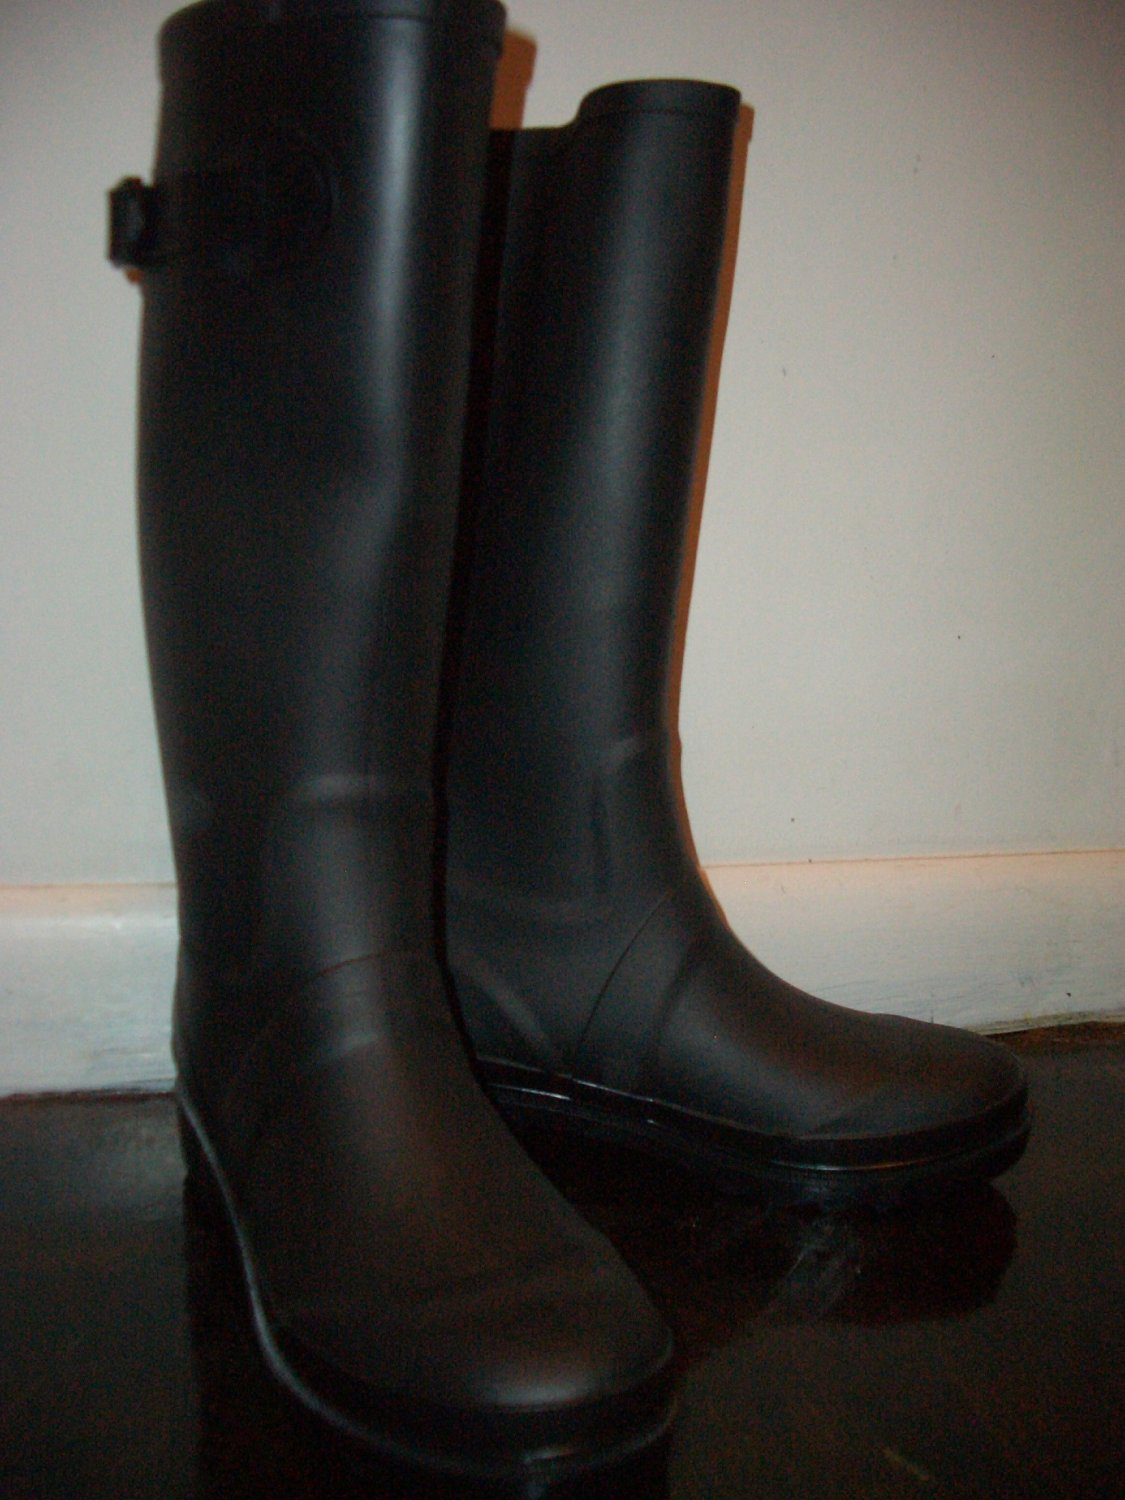 Marc by Marc Jacobs Women's Rain boots size 8 Black